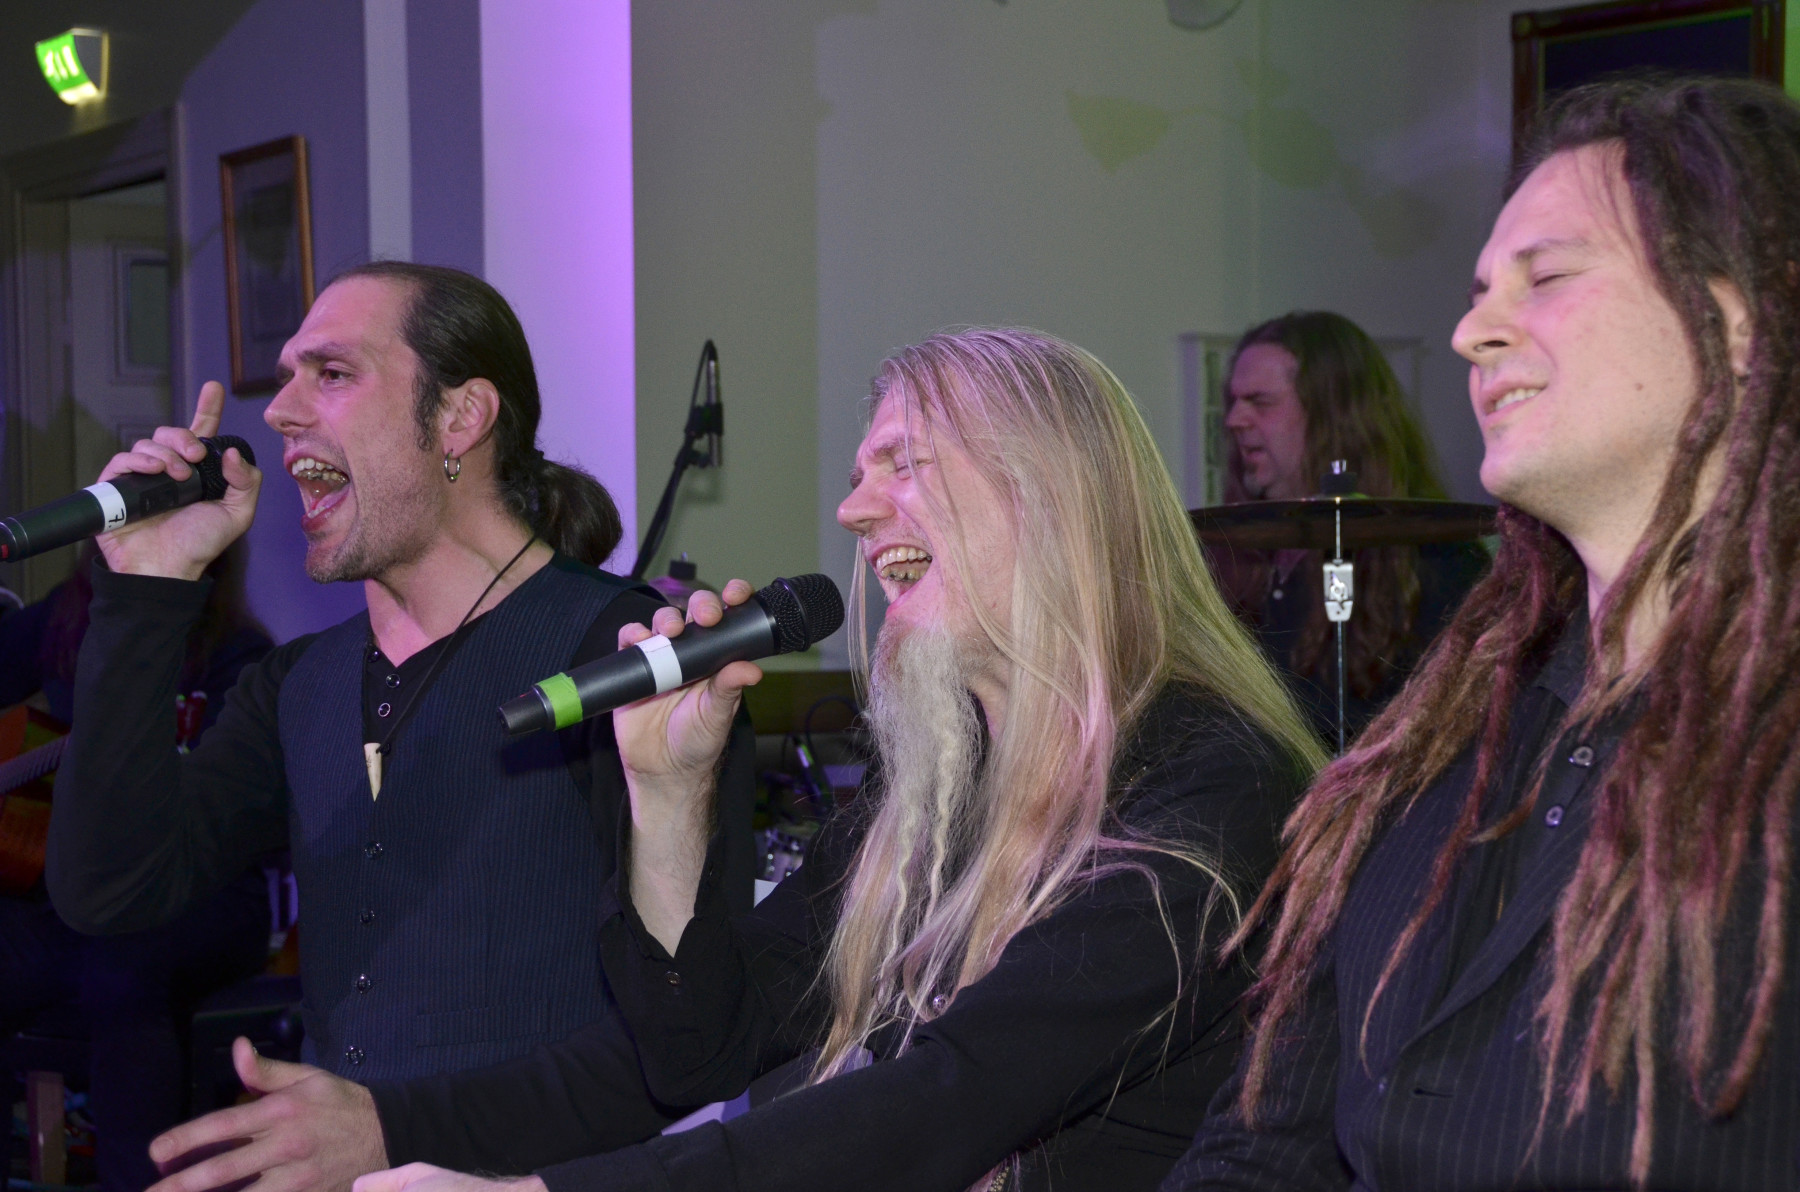 Erkka Korhonen, Marco Hietala, Tony Kakko and Elize Ryd are not just giving by playing well-loved heavy carols but they also collect donations at their gigs for development projects around the world. This Christmas they are hoping to raise more than a million euros for peace projects.